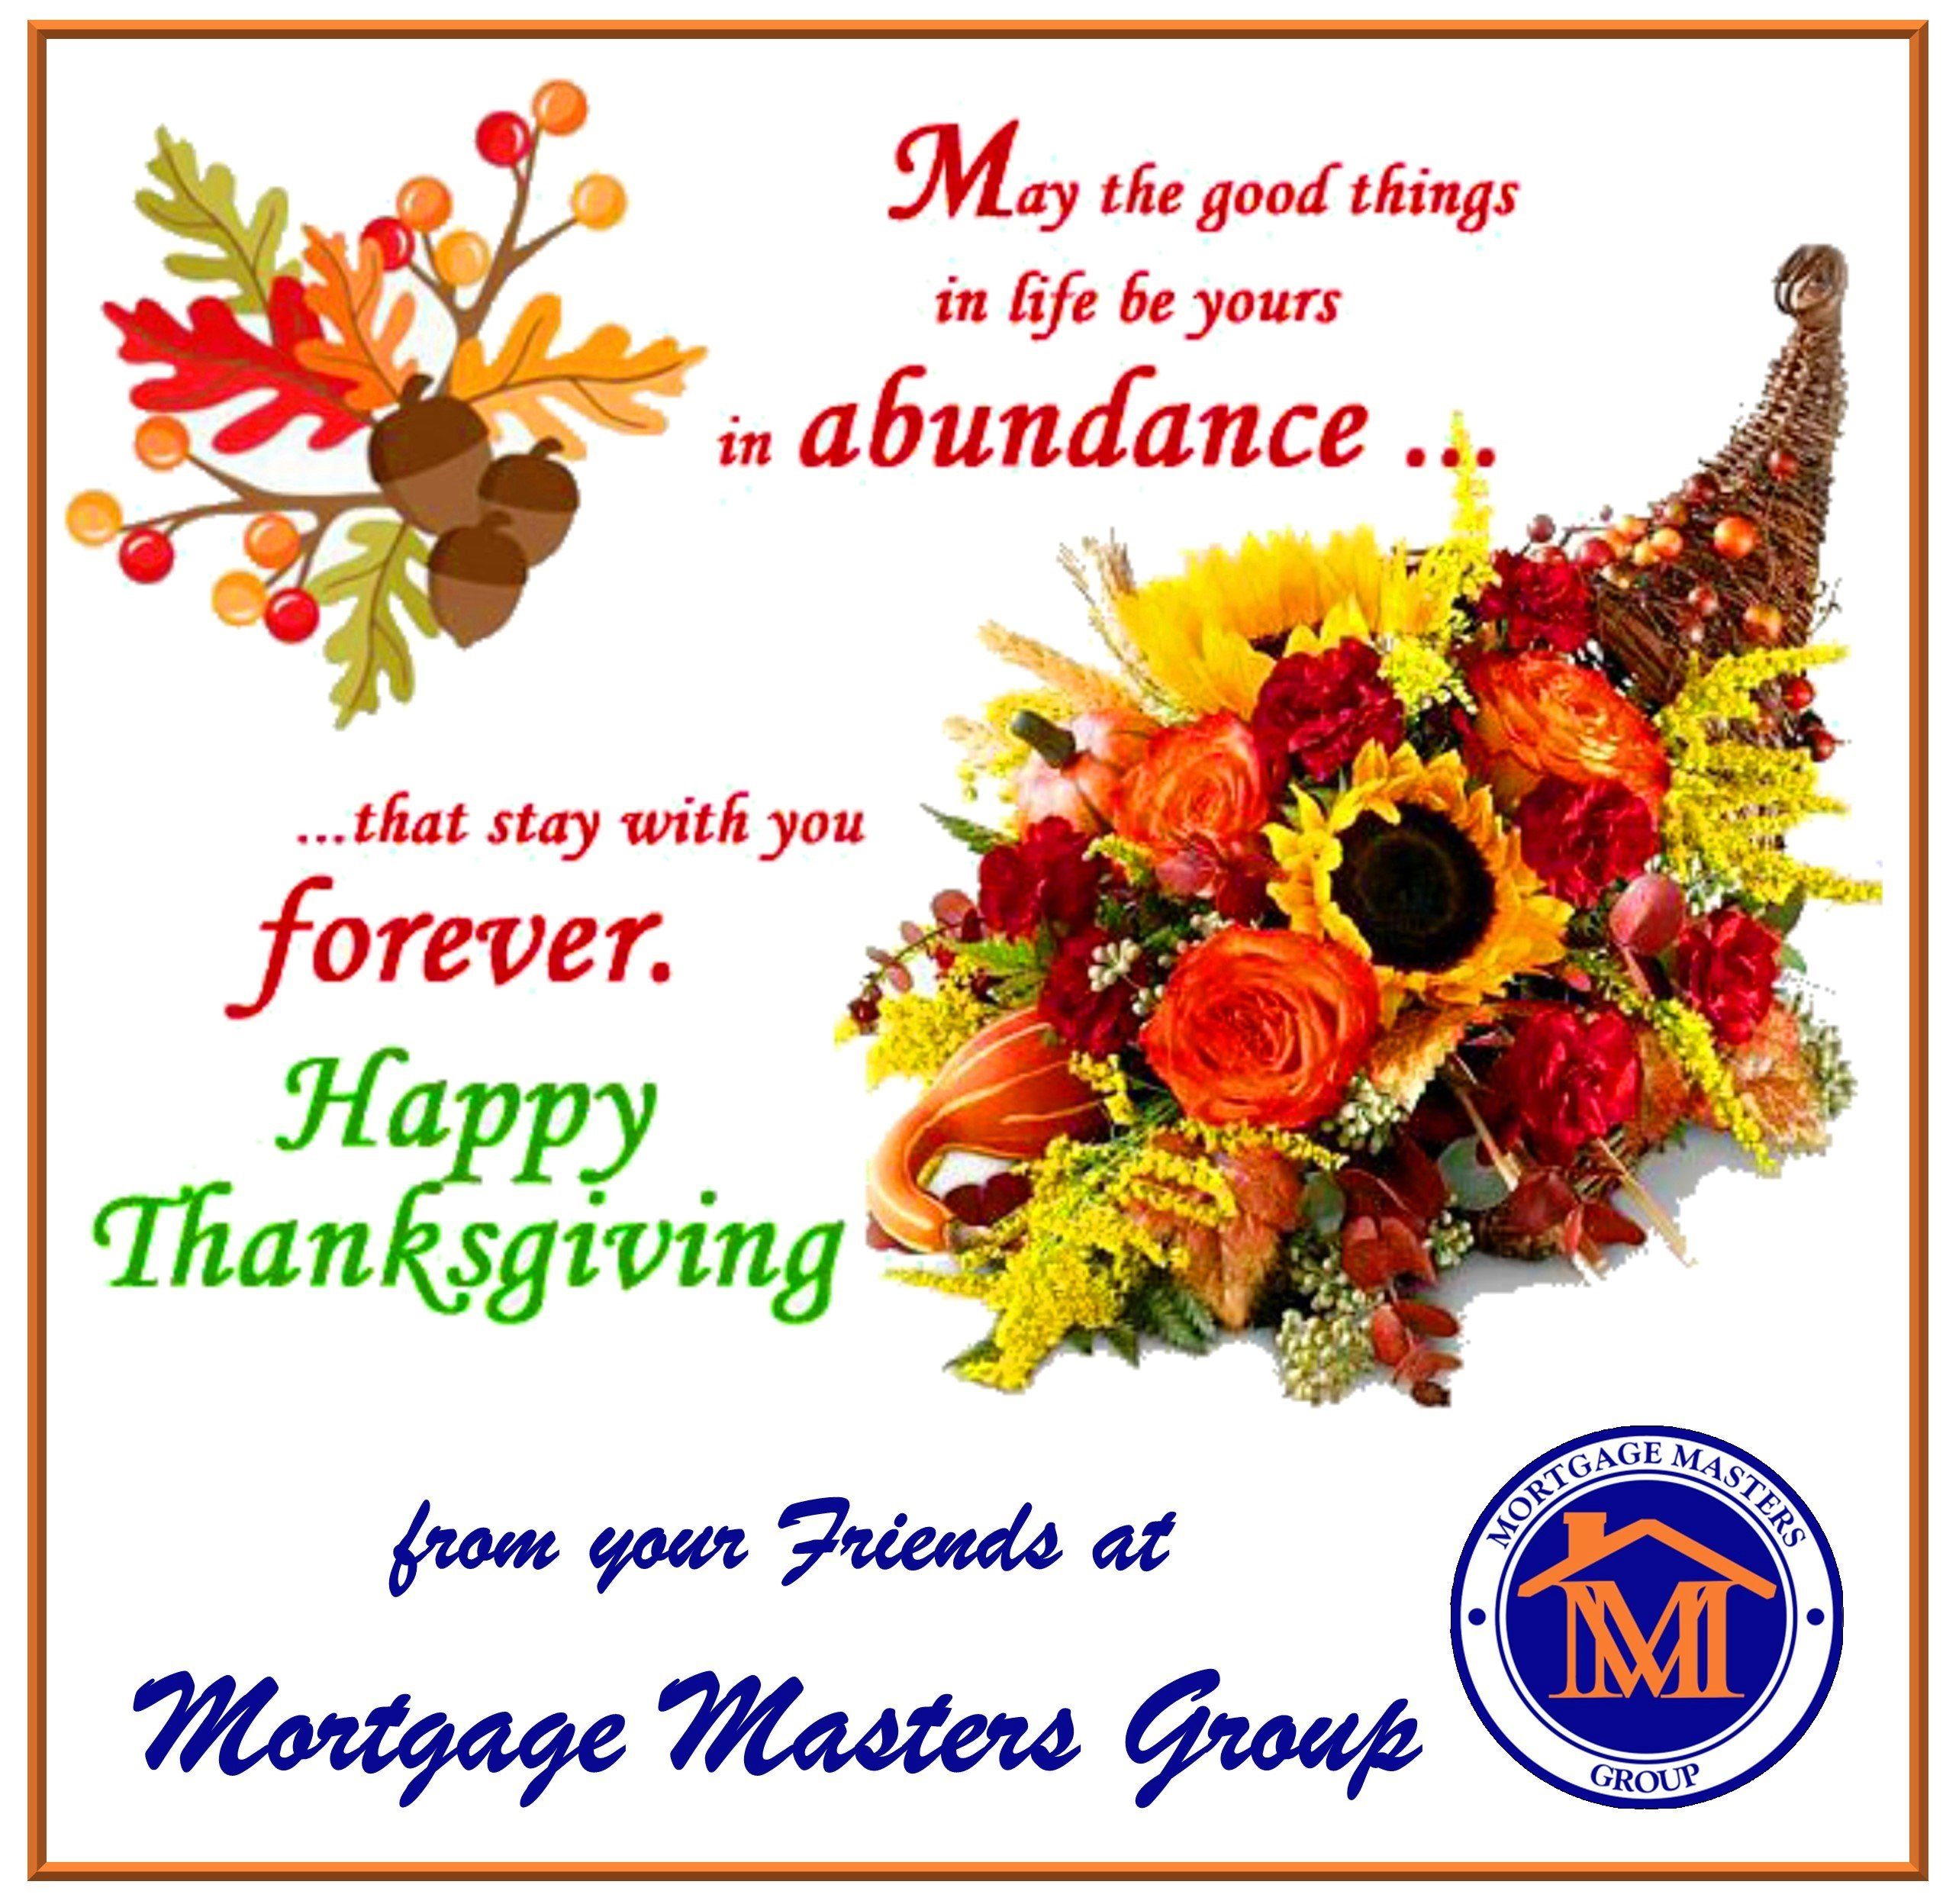 Happy Thanksgiving from your Friends at Mortgage Masters Group